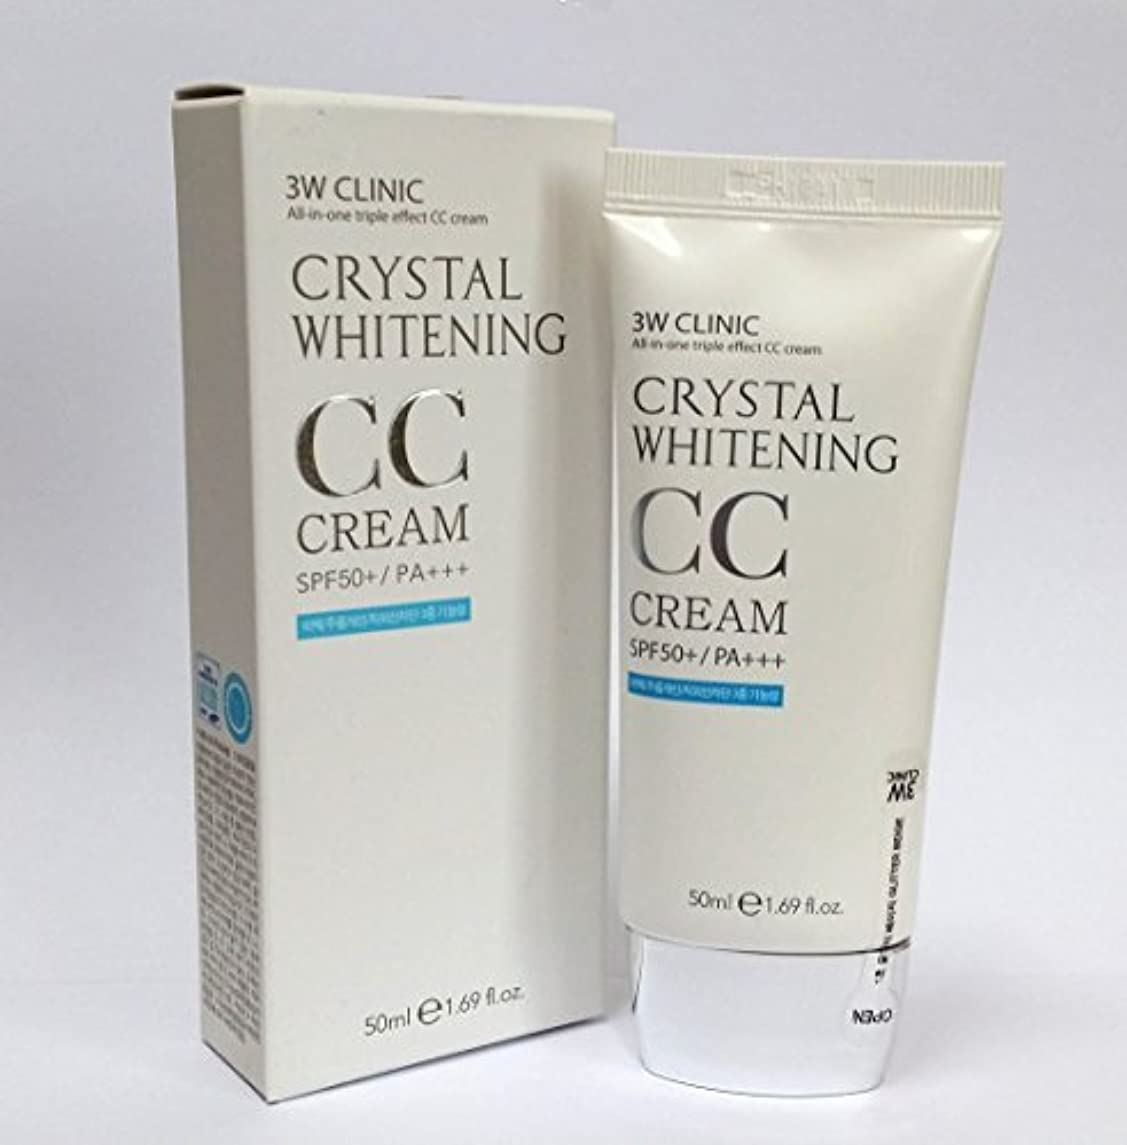 [3W CLINIC] クリスタルホワイトニングCCクリーム50ml SPF50 PA +++ / #01 Glitter Beige/Crystal Whitening CC Cream 50ml SPF50 PA++...